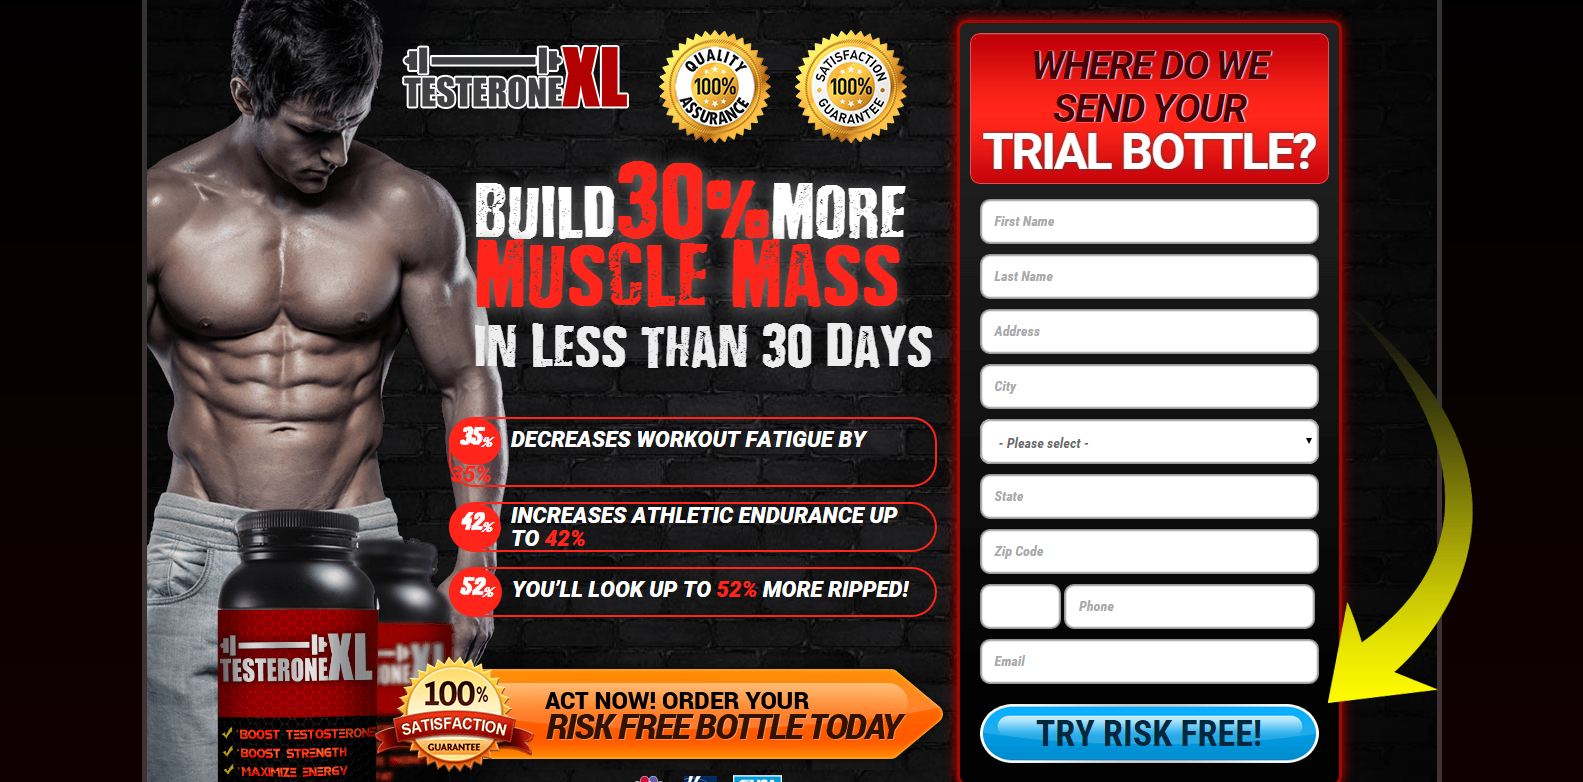 TesteroneXL-Review-How-Real-is-This-Does-It-Really-Work-Read-Review-Below-pills-formula-before-and-after-results-reviews-bottles-free-trial-becoming-alpha-male